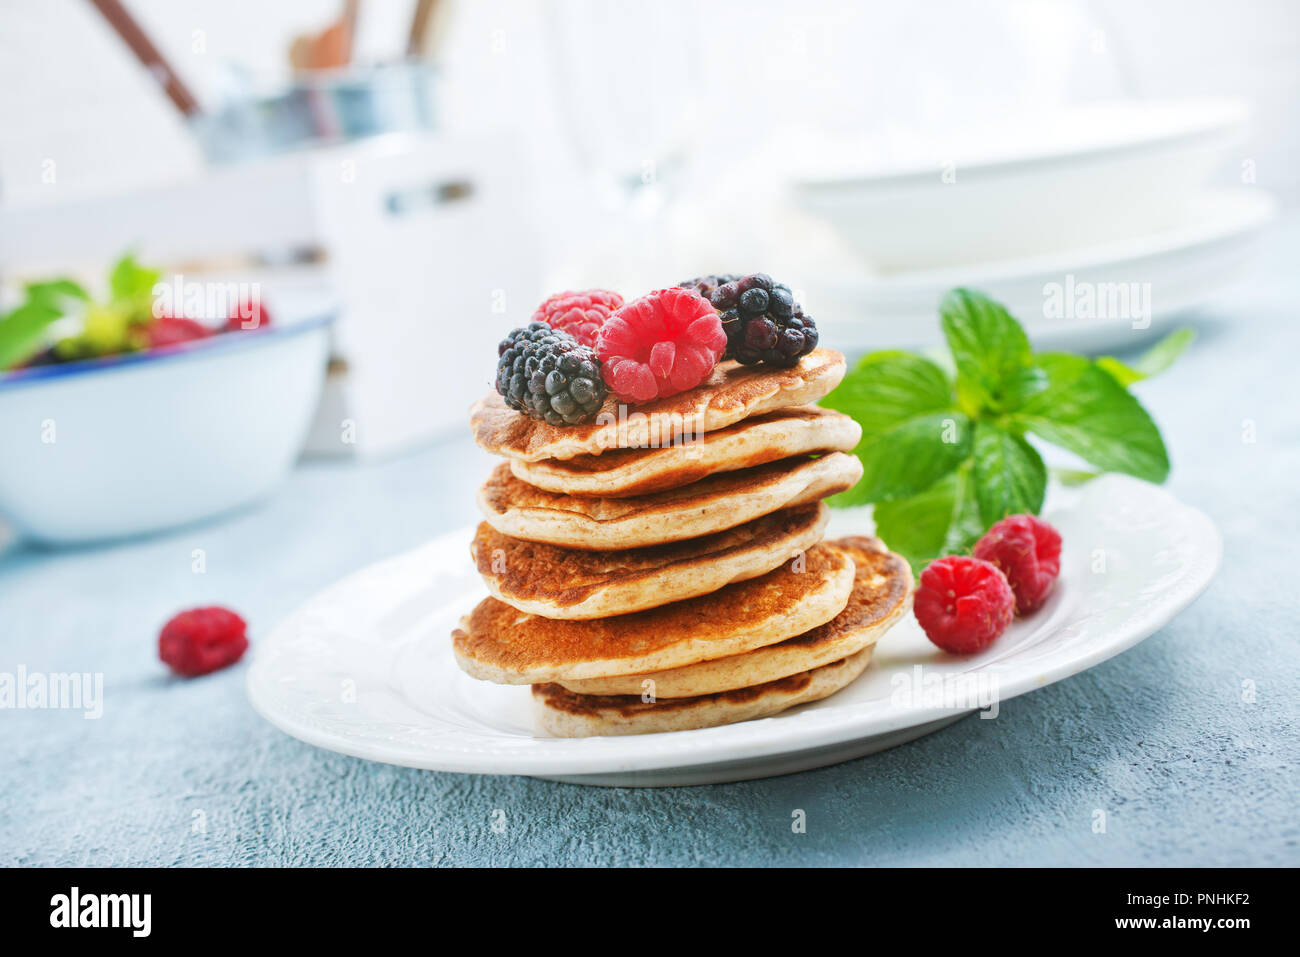 pancakes with fresh berries on plate, stock photo - Stock Image